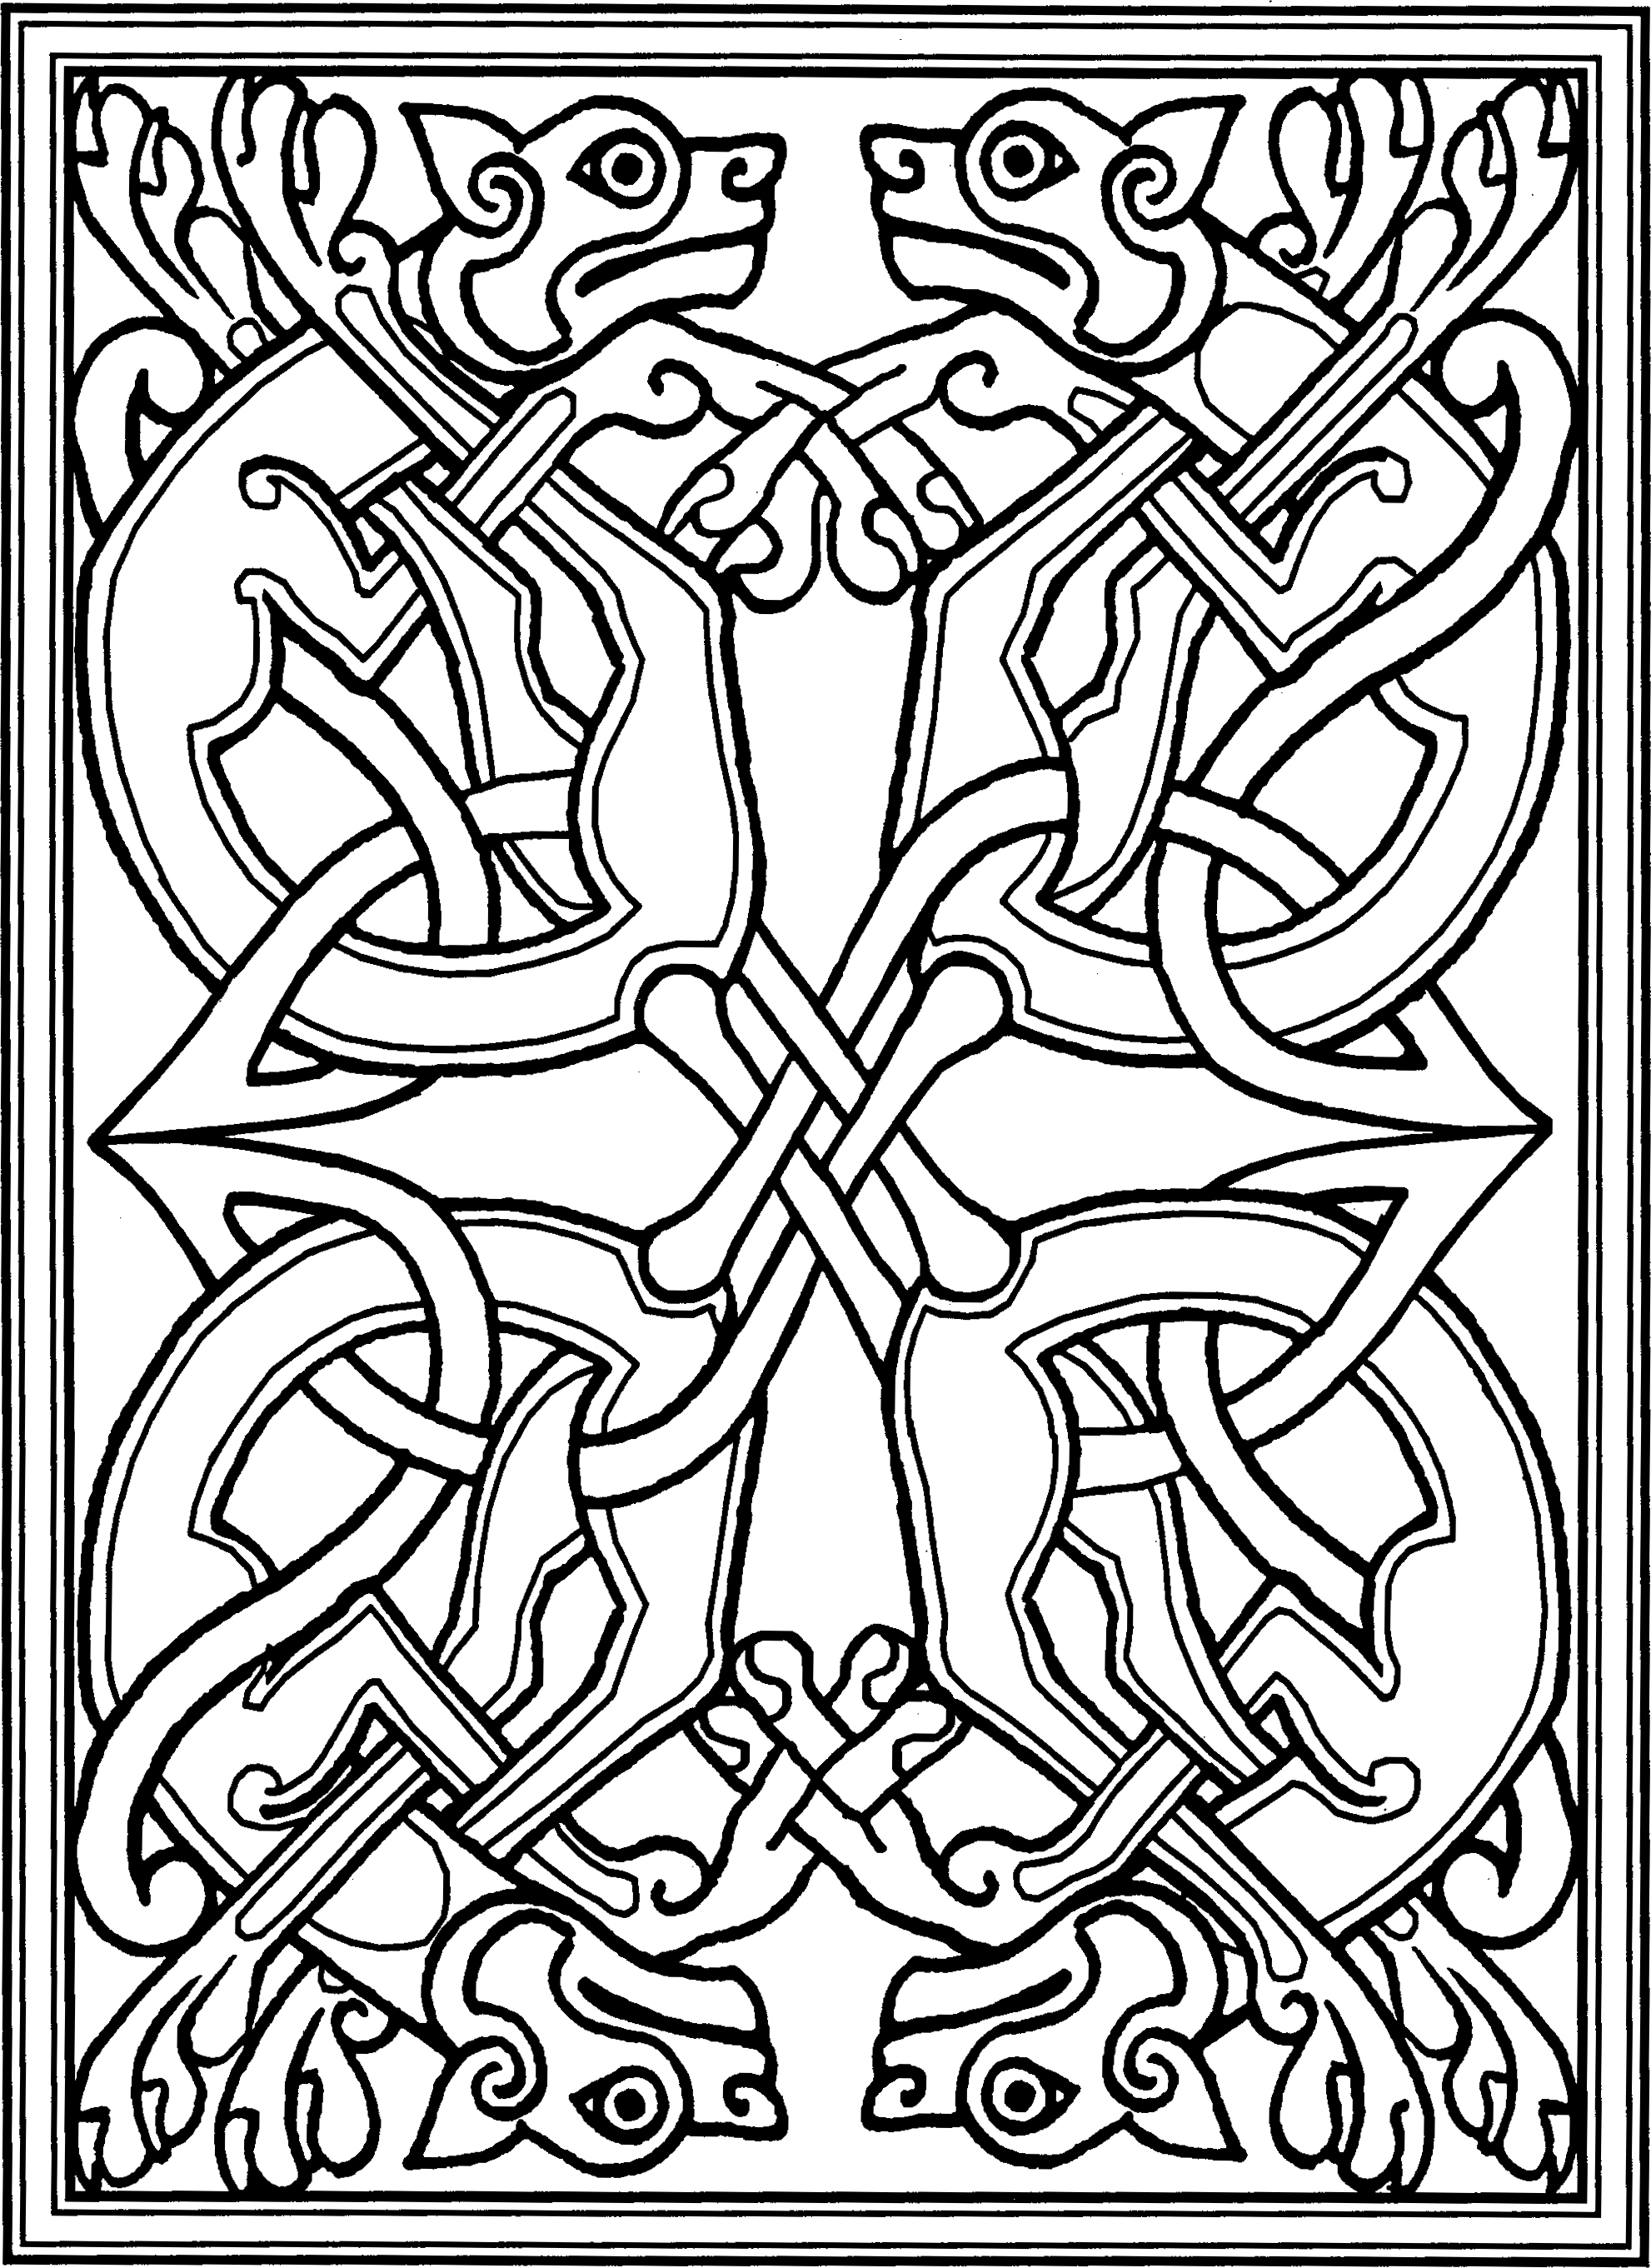 File:Celtic rectangle chien.jpg - Wikimedia Commons